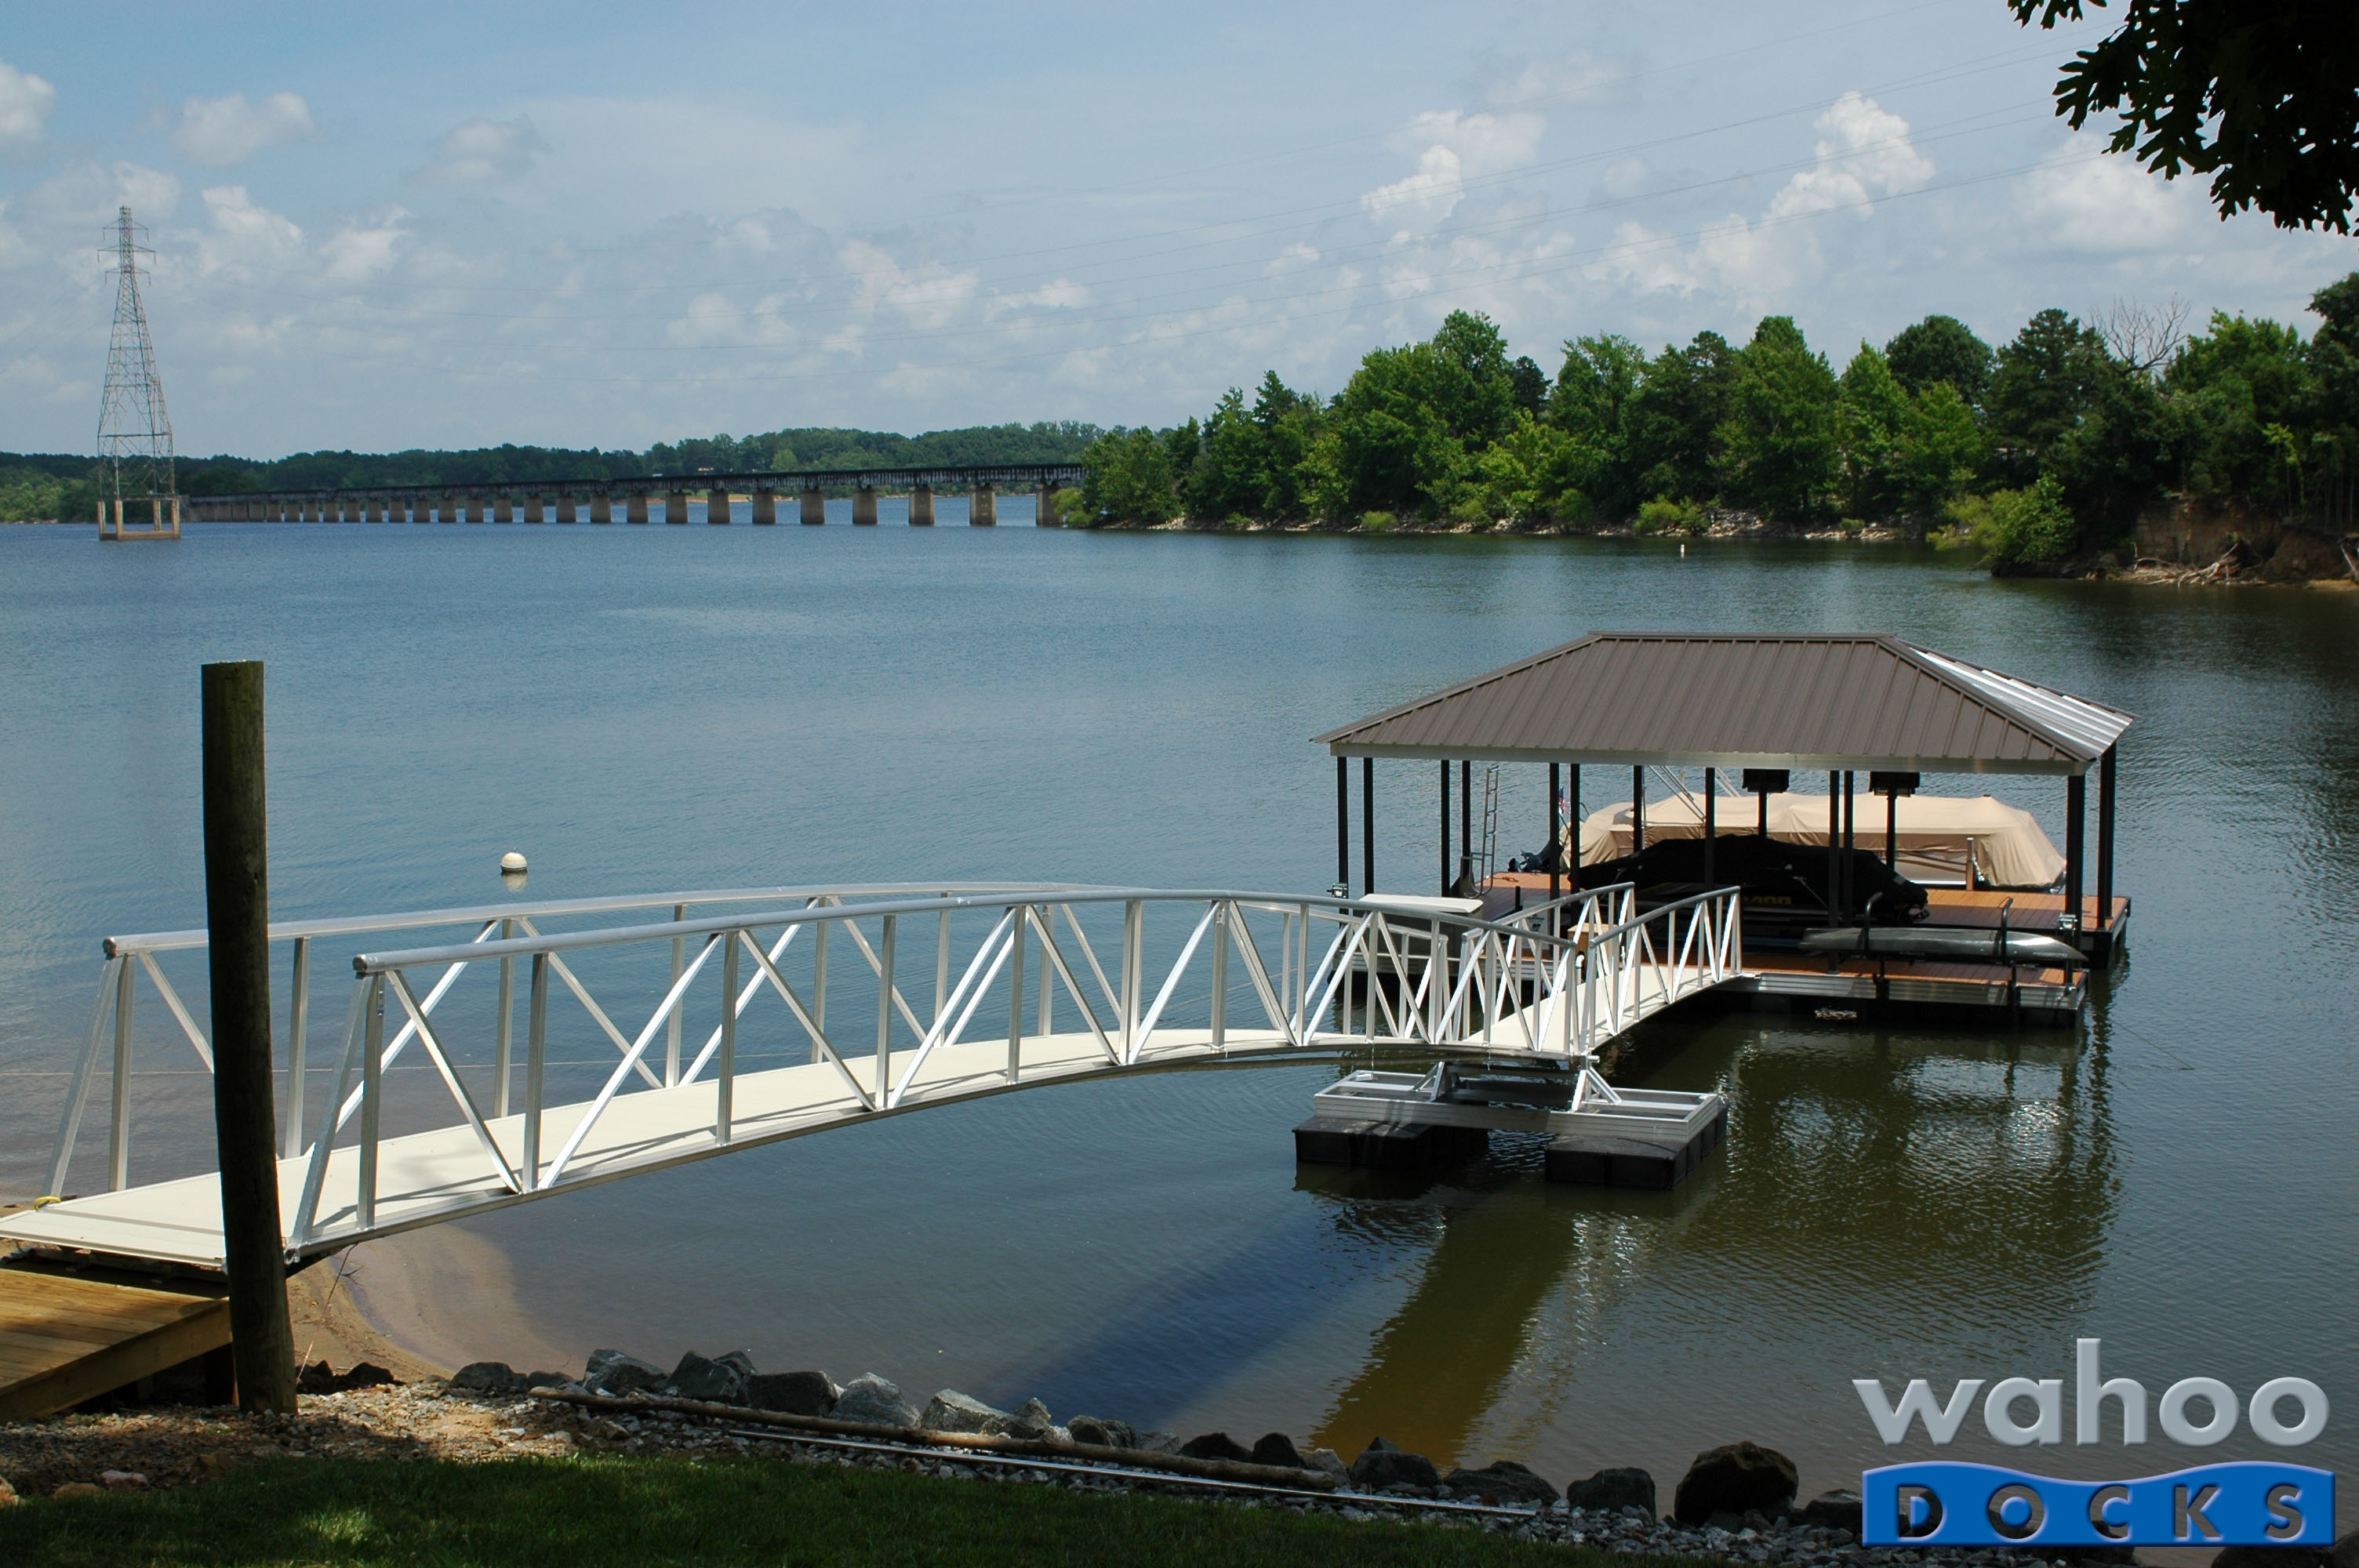 Wahoo-Dock-Garland-June-2013-5